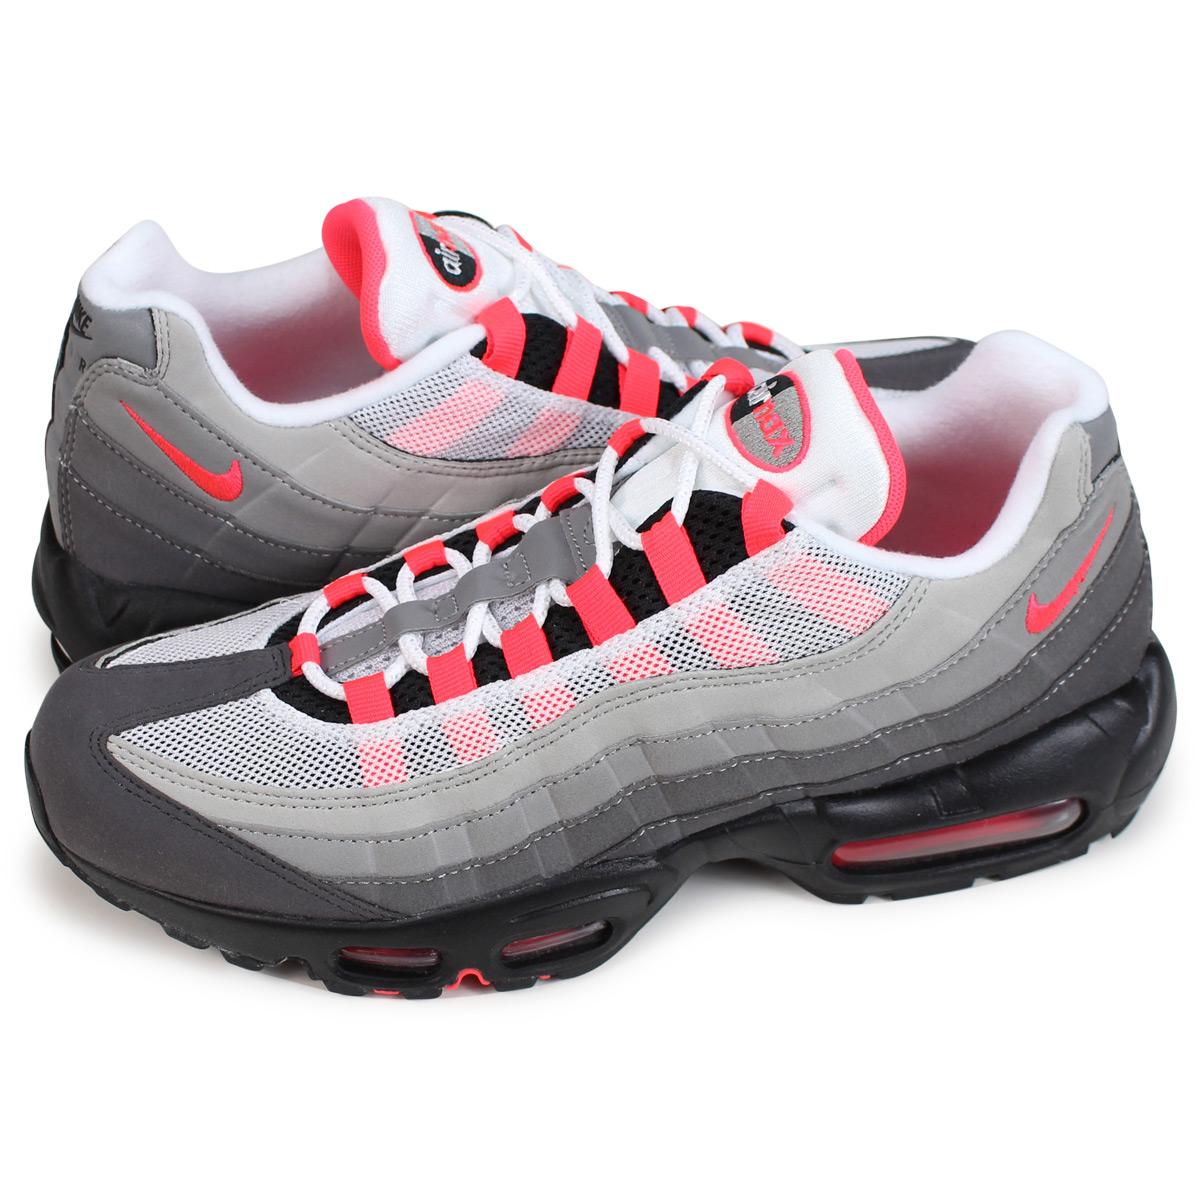 Nike NIKE Air Max 95 sneakers men AIR MAX 95 OG solar red AT2865 100 [193]